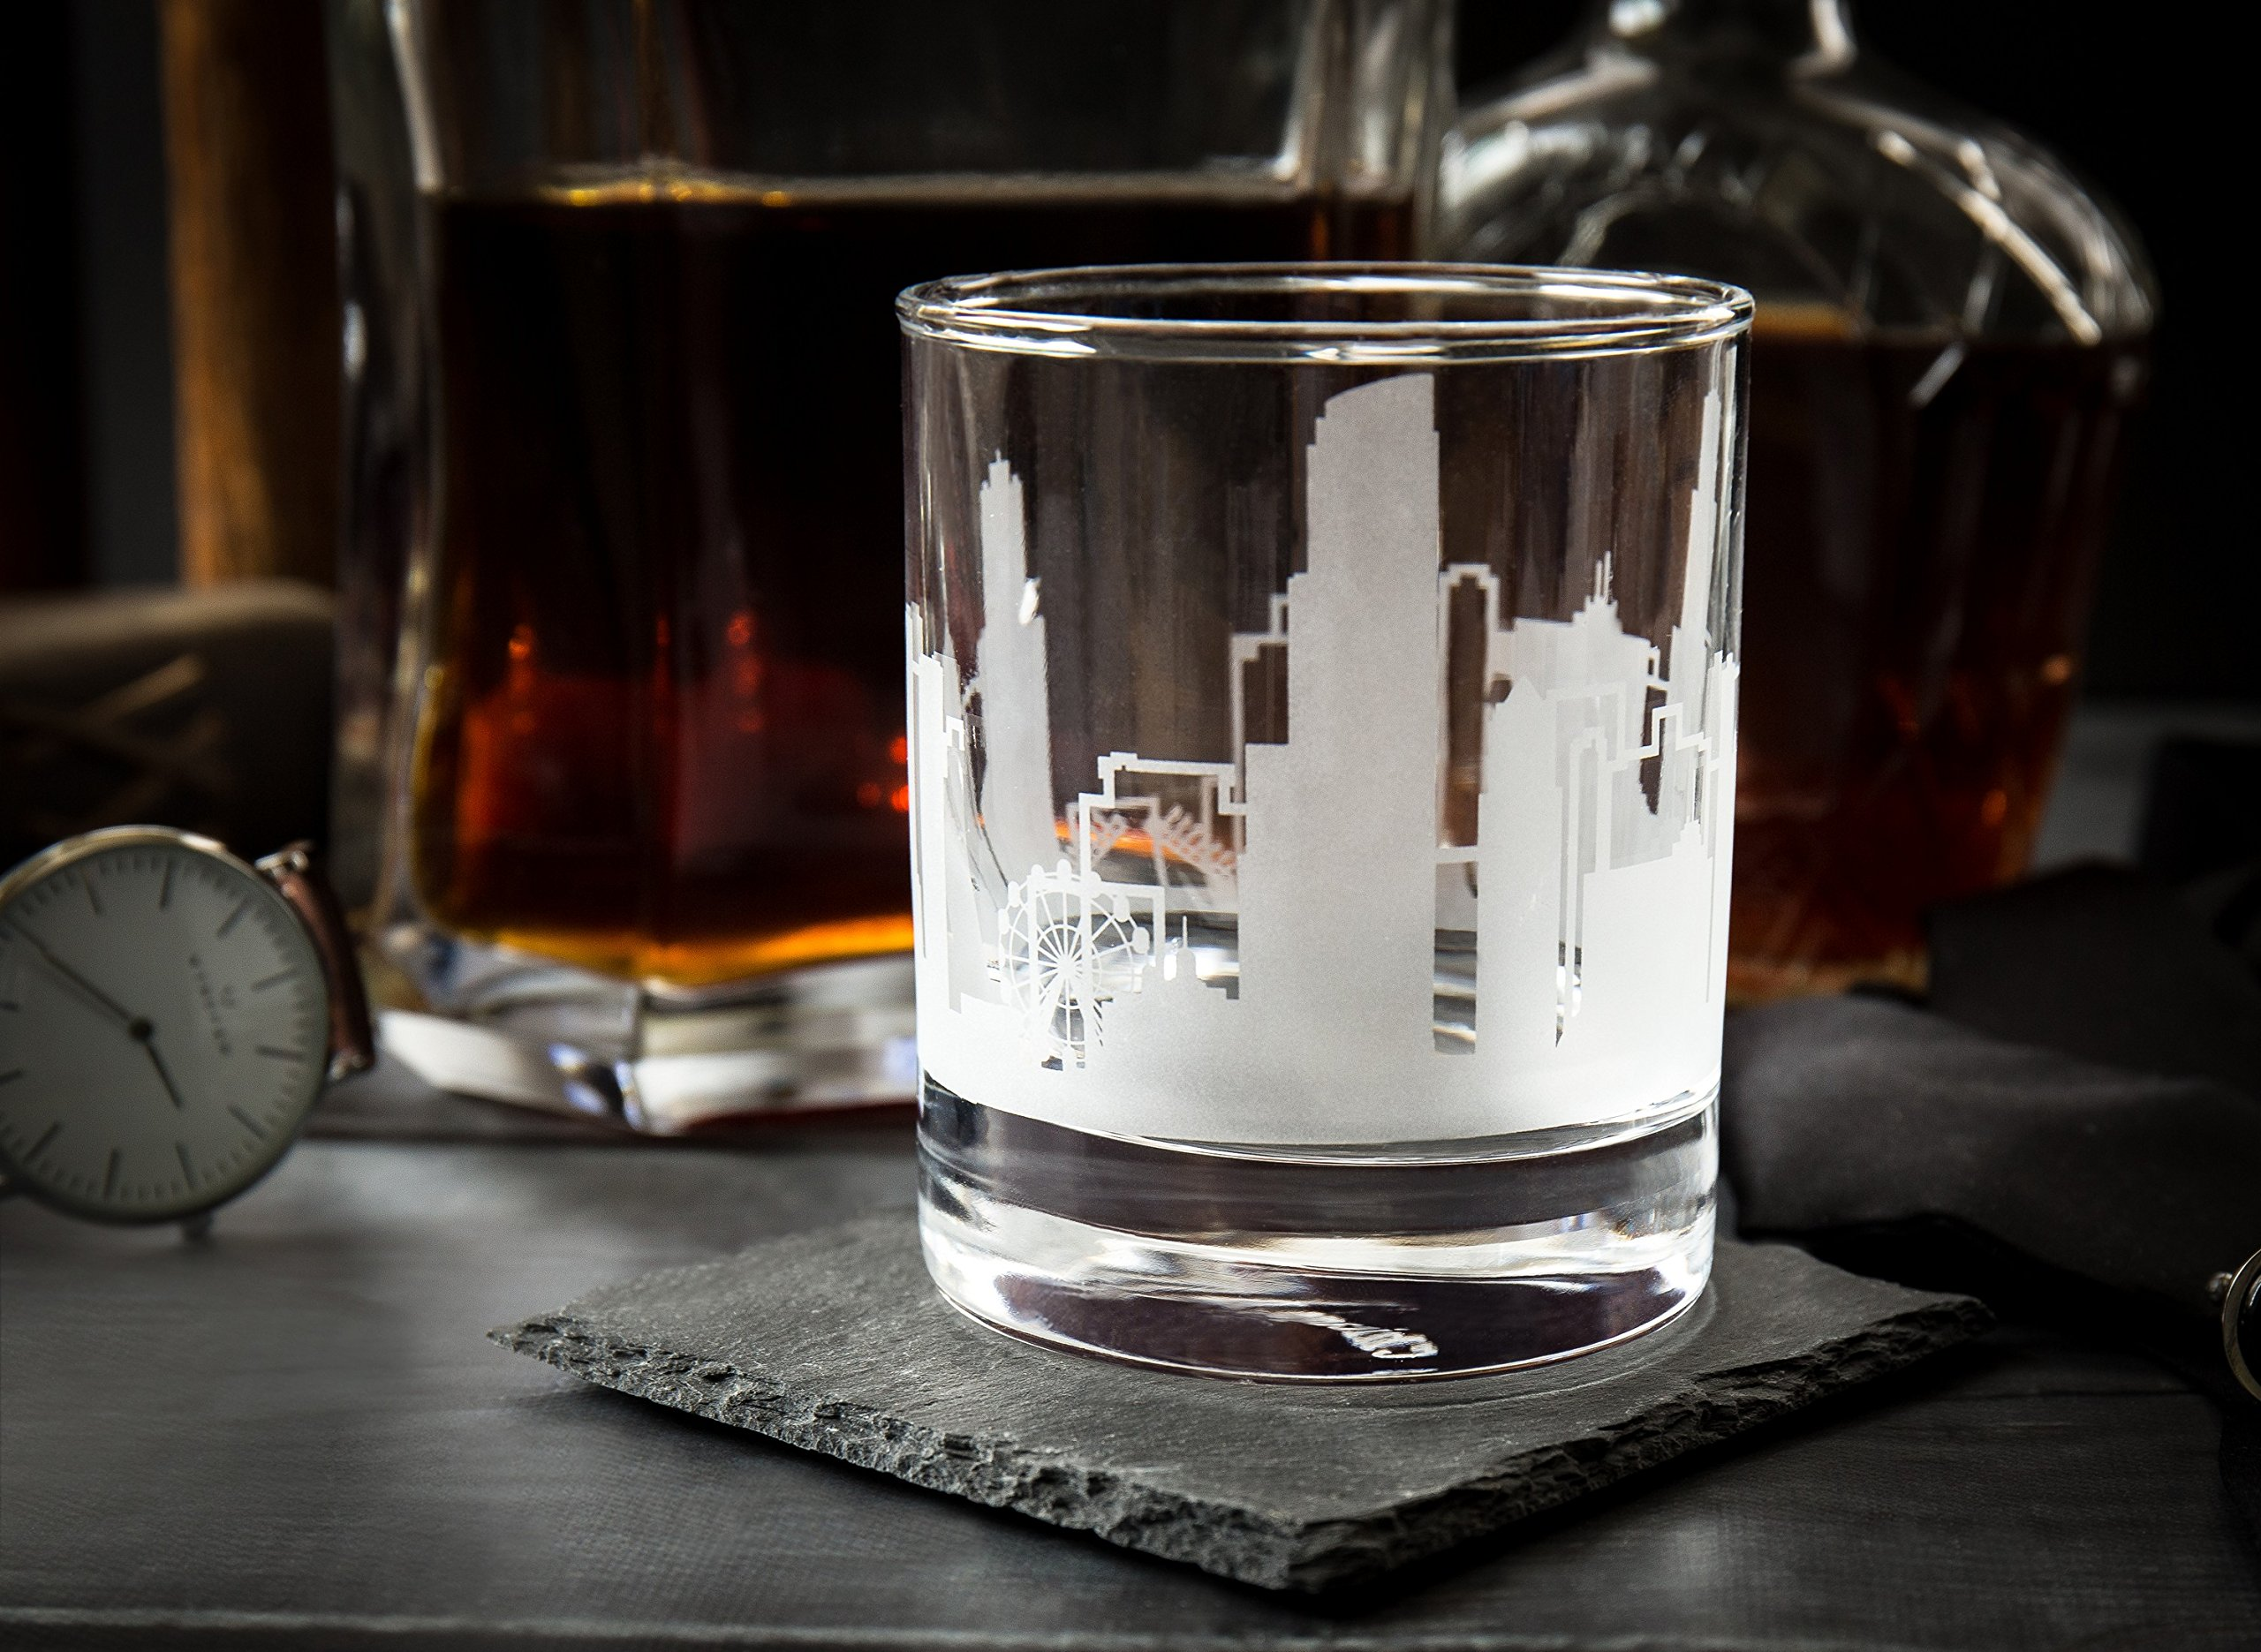 Greenline Goods Skyline Etched Chicago Whiskey Glasses Gift (Set of 2) | Old Fashioned Tumbler – For Chicago Lovers